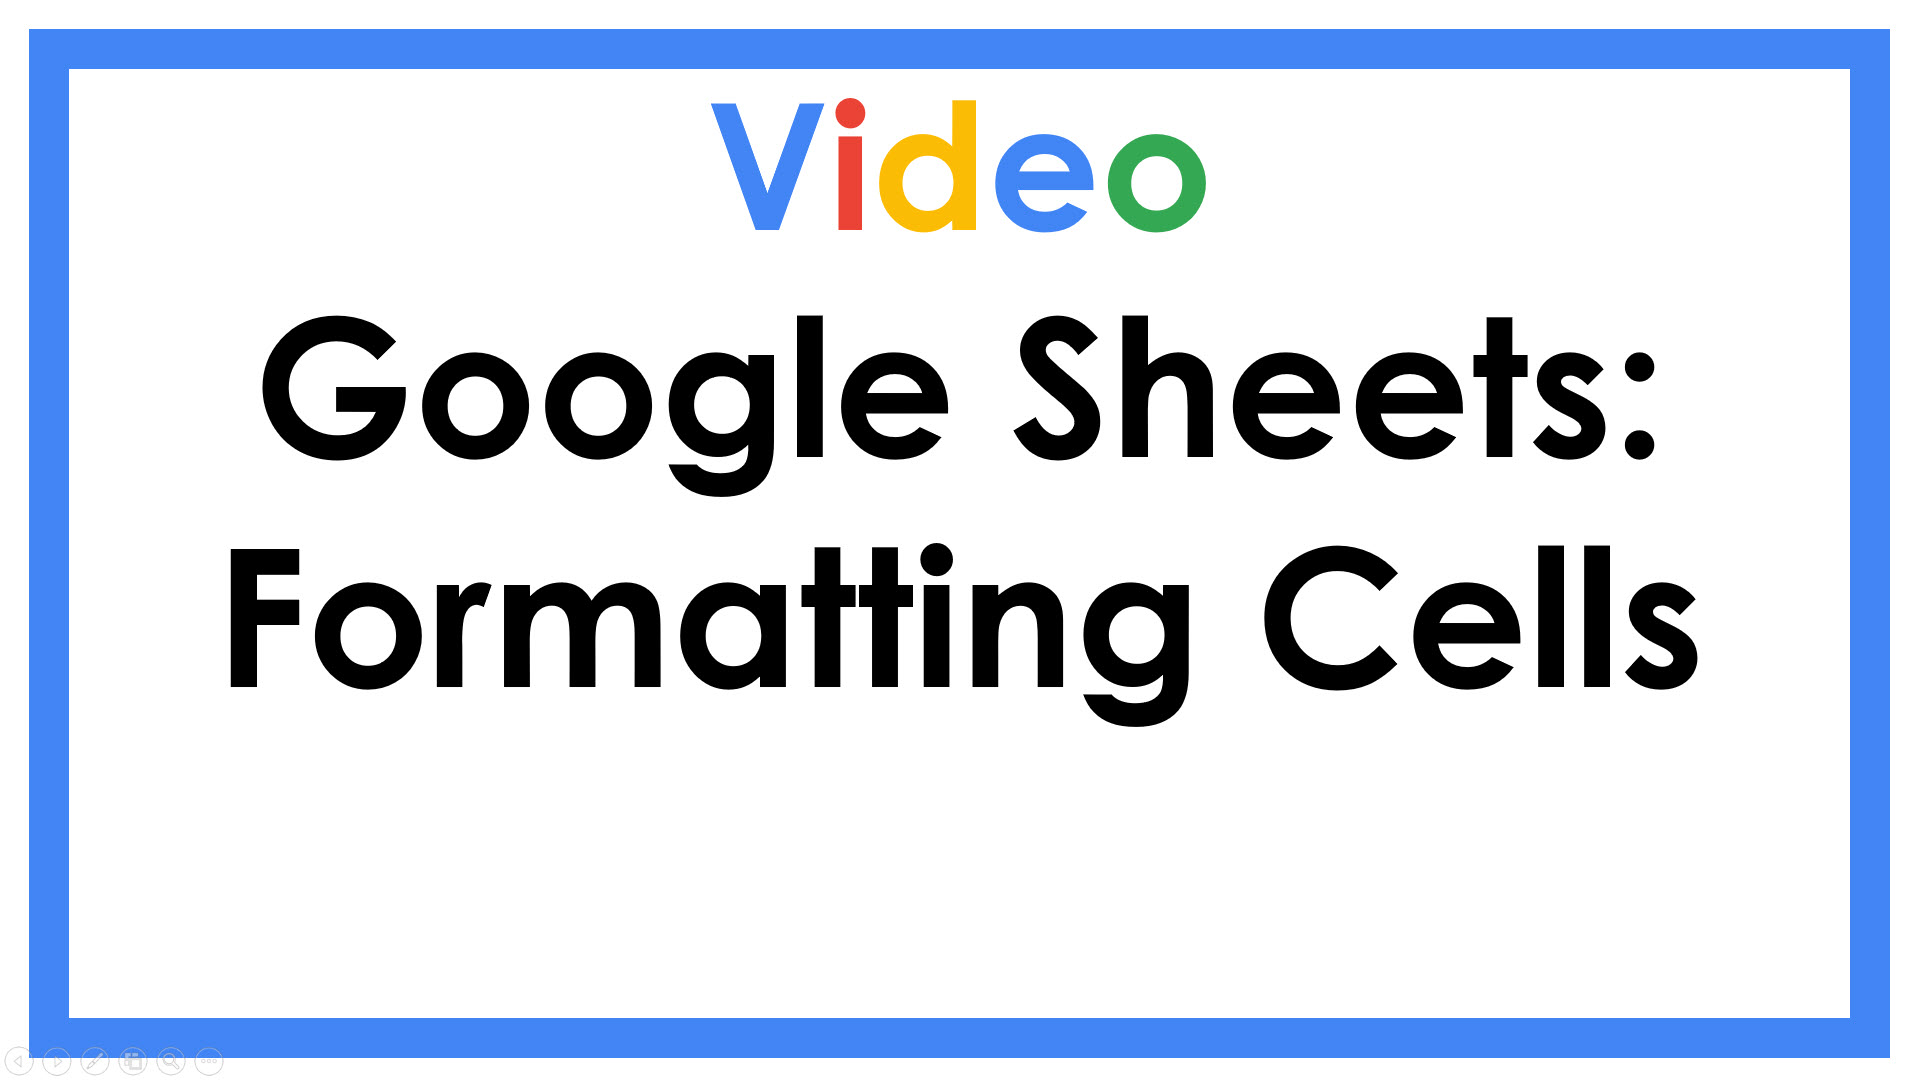 Google Sheets: Formatting Cells